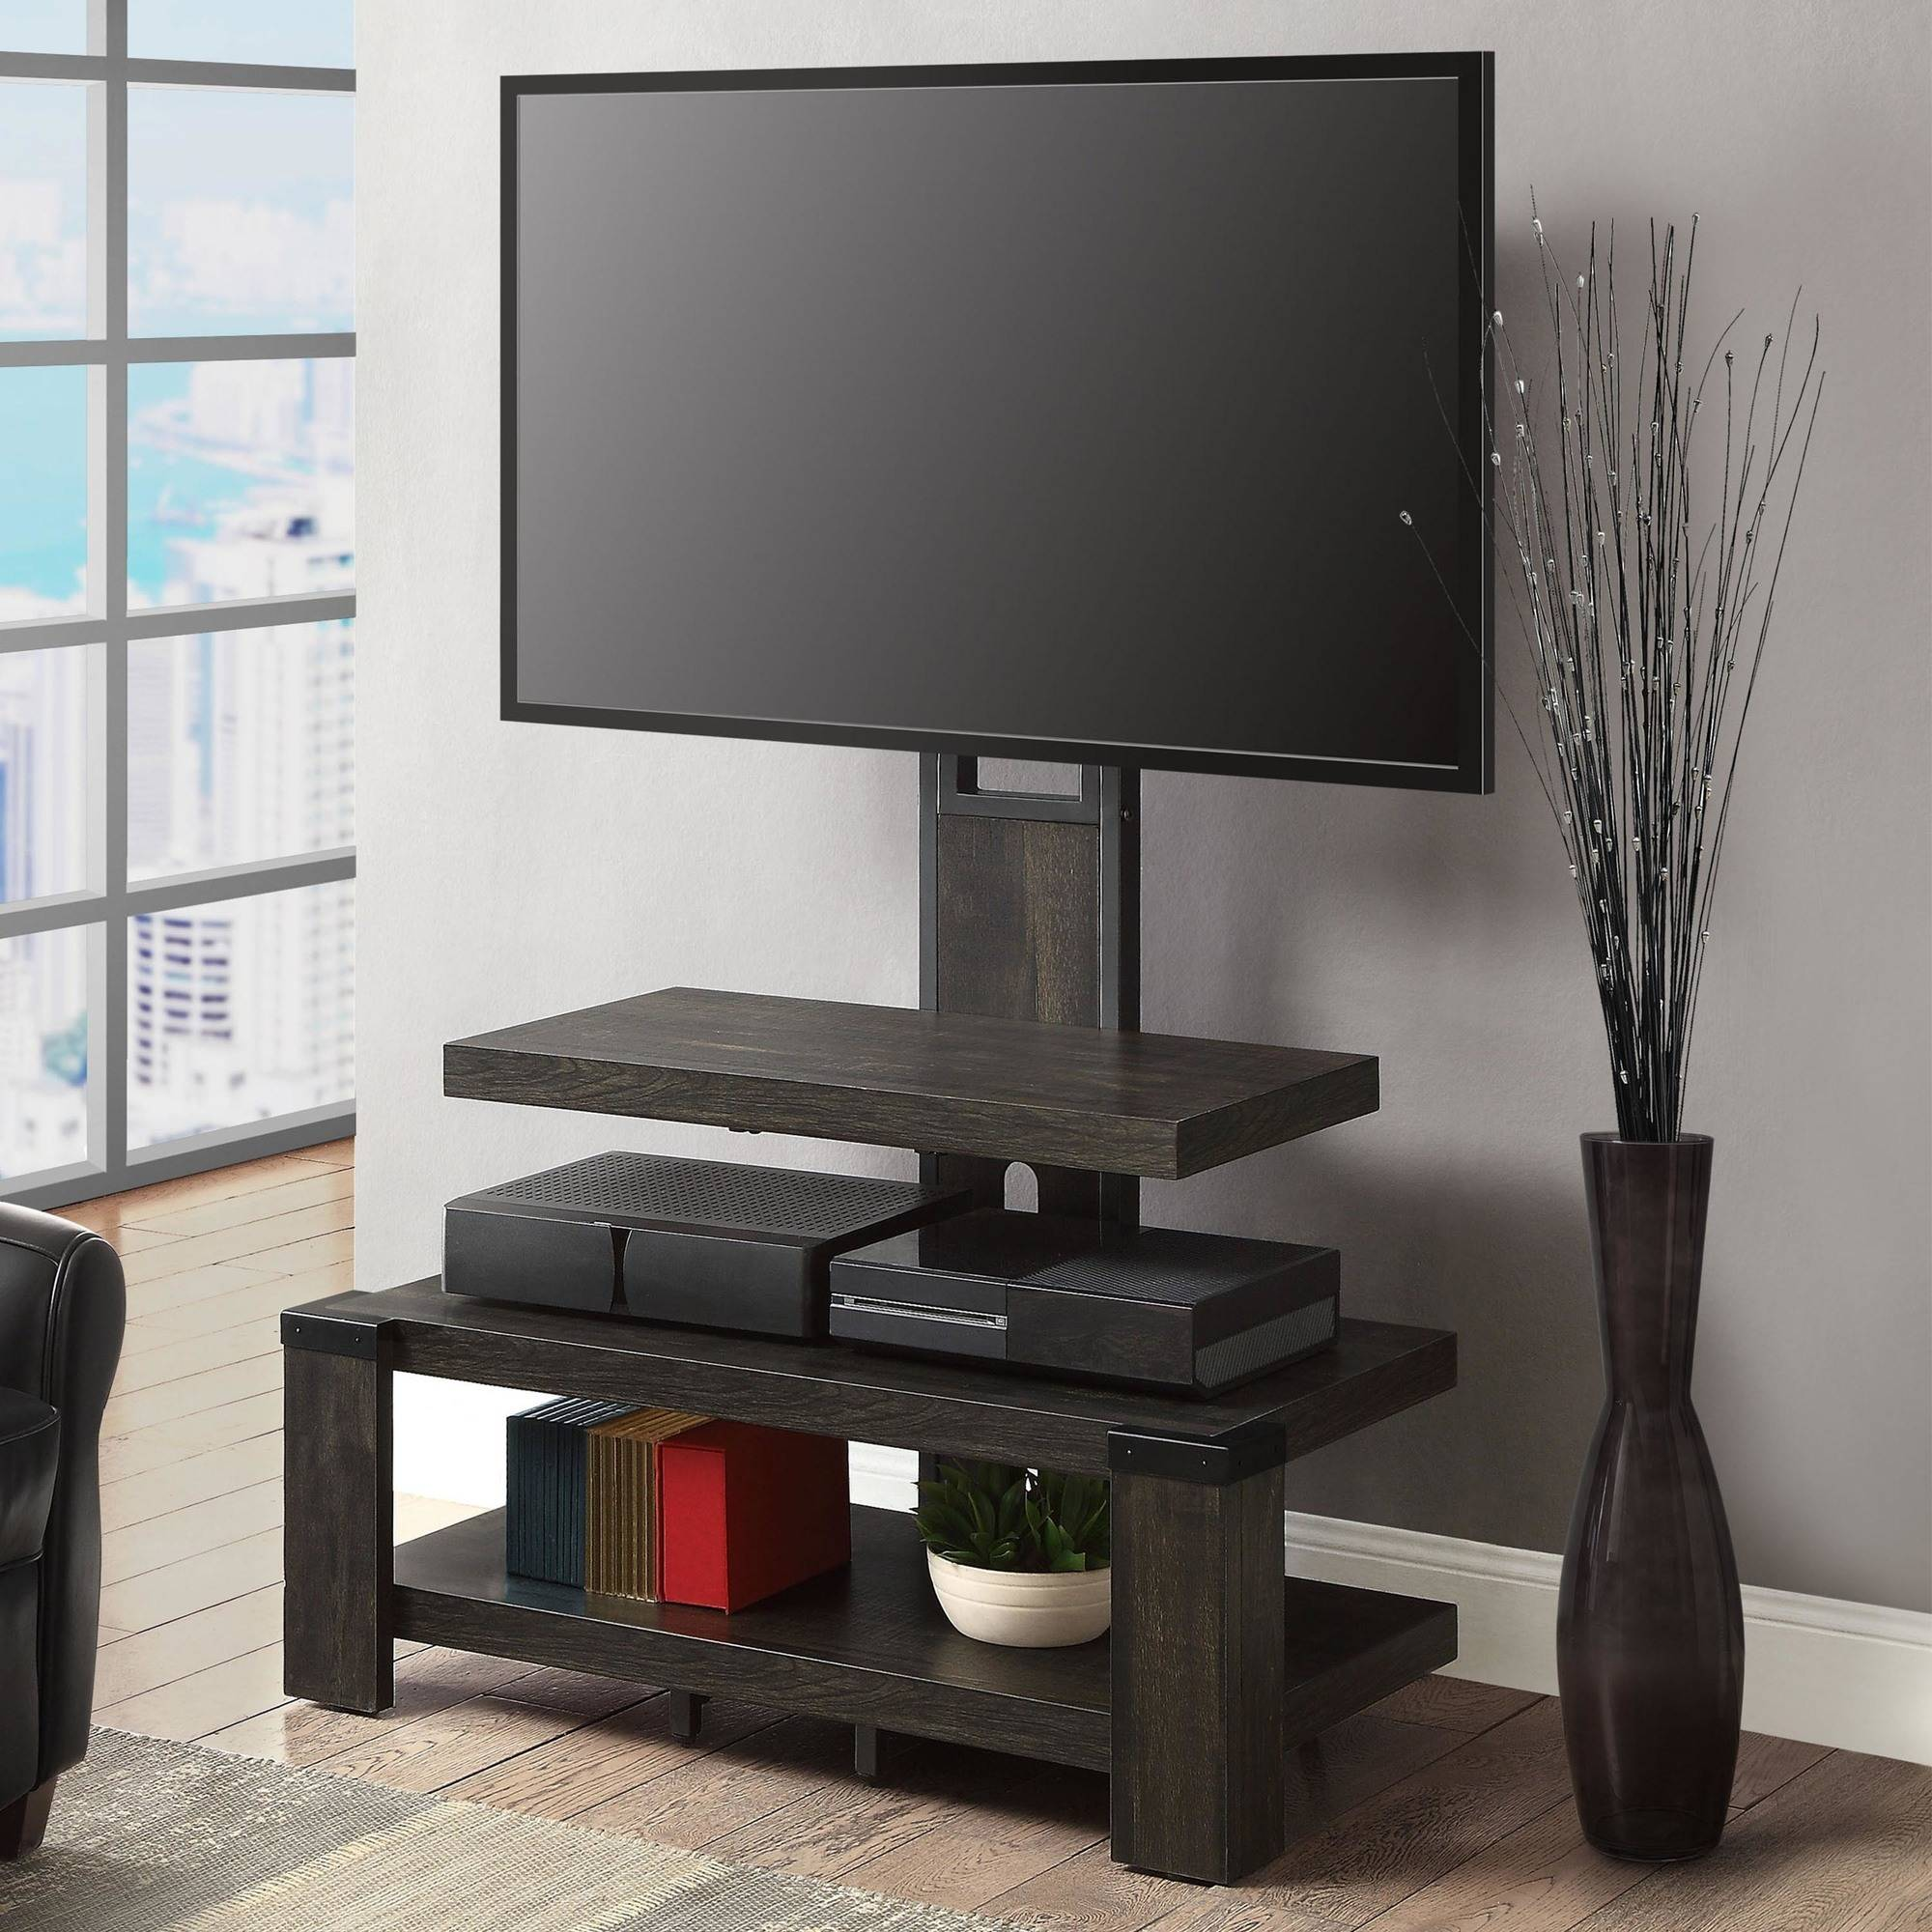 whalen 3 shelf television stand with floater mount for tvs up to 55 perfect for flat screens weathered dark pine finish walmart com